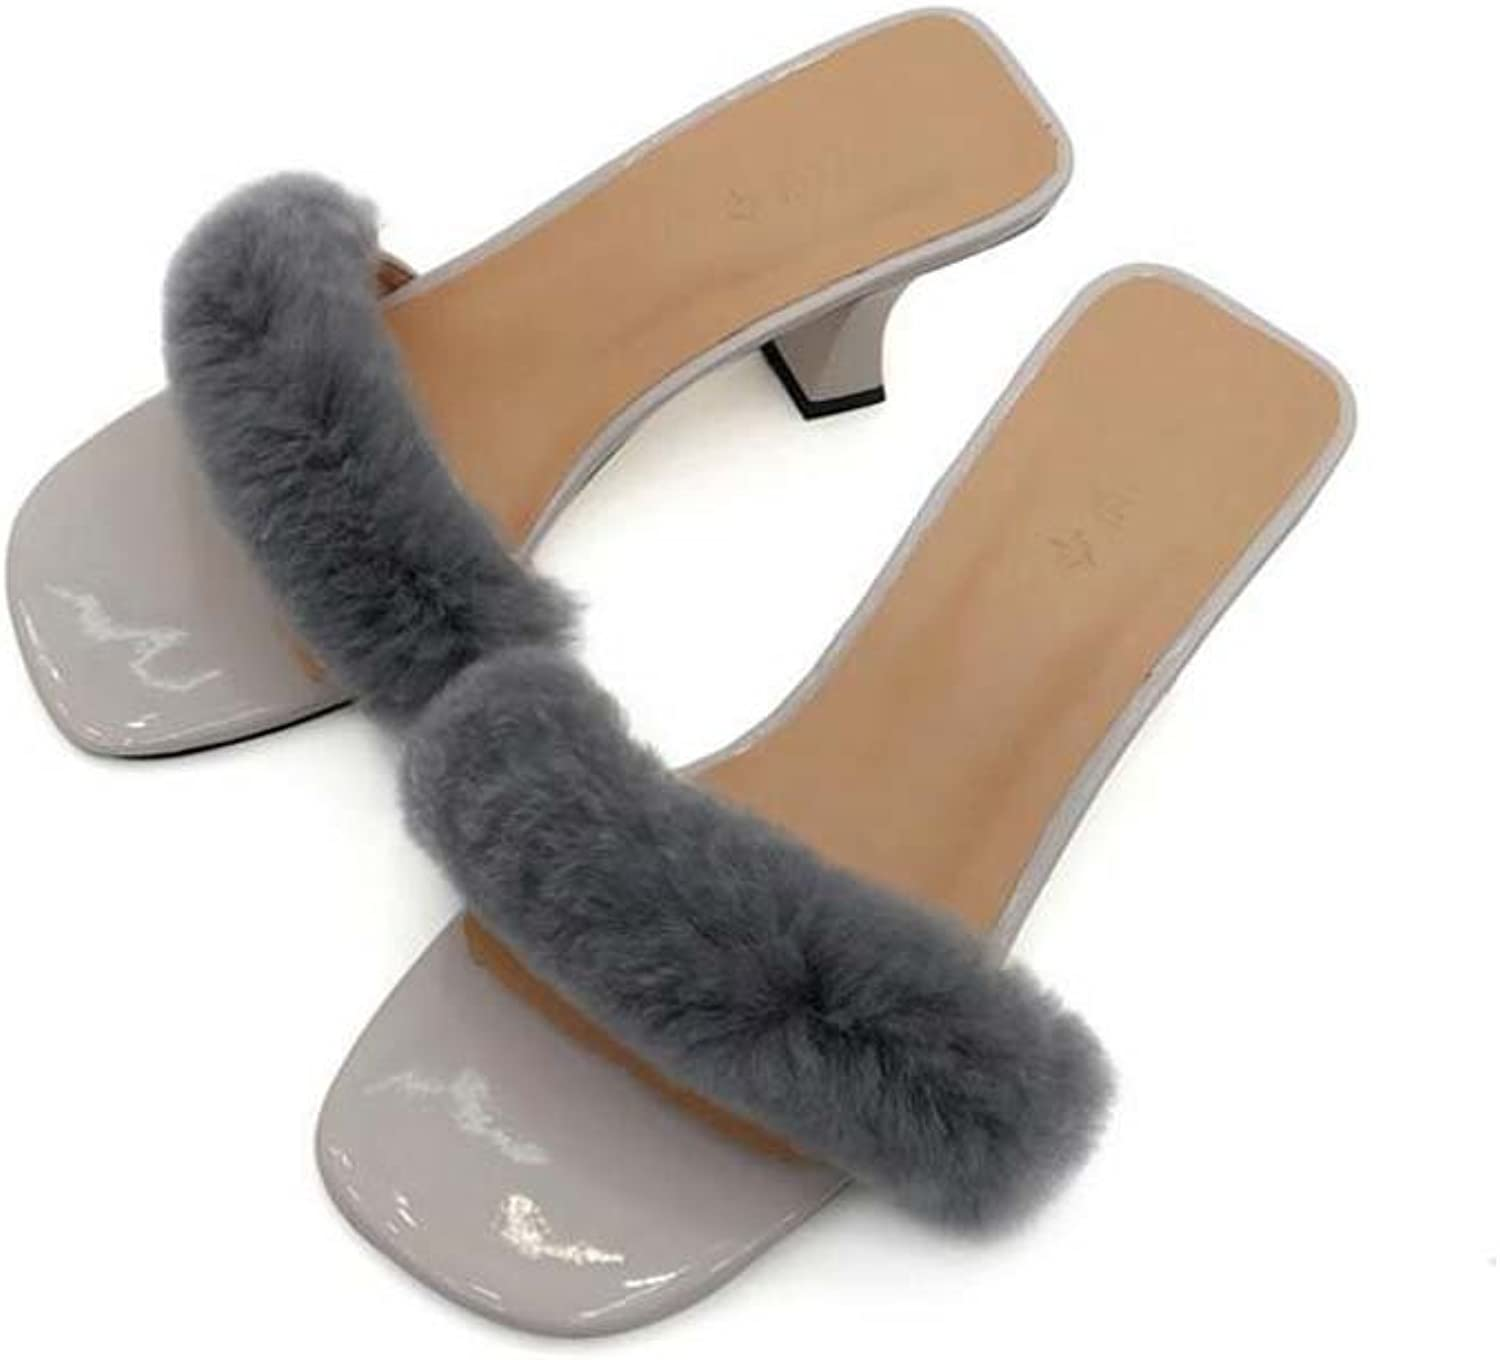 Women Pump 7.5cm Chunkly Heel Open Toe Plush Slippers Dress shoes Sweet Fashion Solid Cool Slippers OL Court shoes Eu Size 34-40